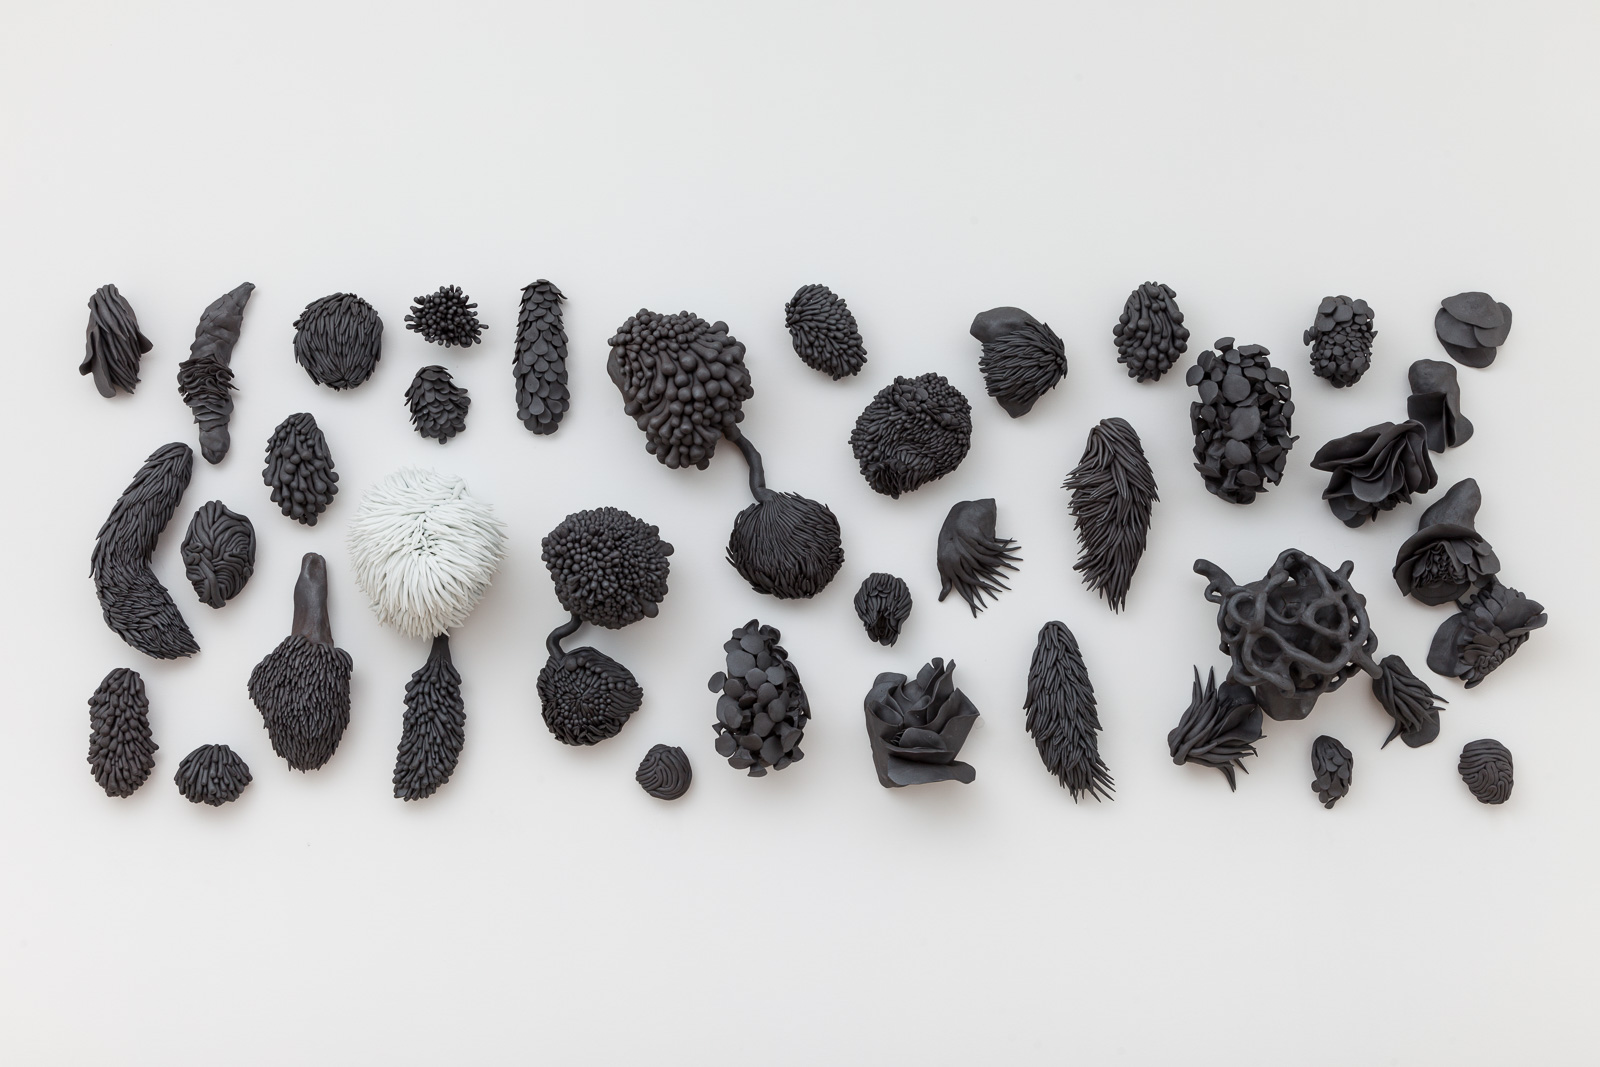 Juz Kitson,  Black sands, ethereal dreams. They are the reeds that bend in the storm,  2018. Porcelain with oxide. 58cm (H) x 1.63m (L) x 18cm (W).